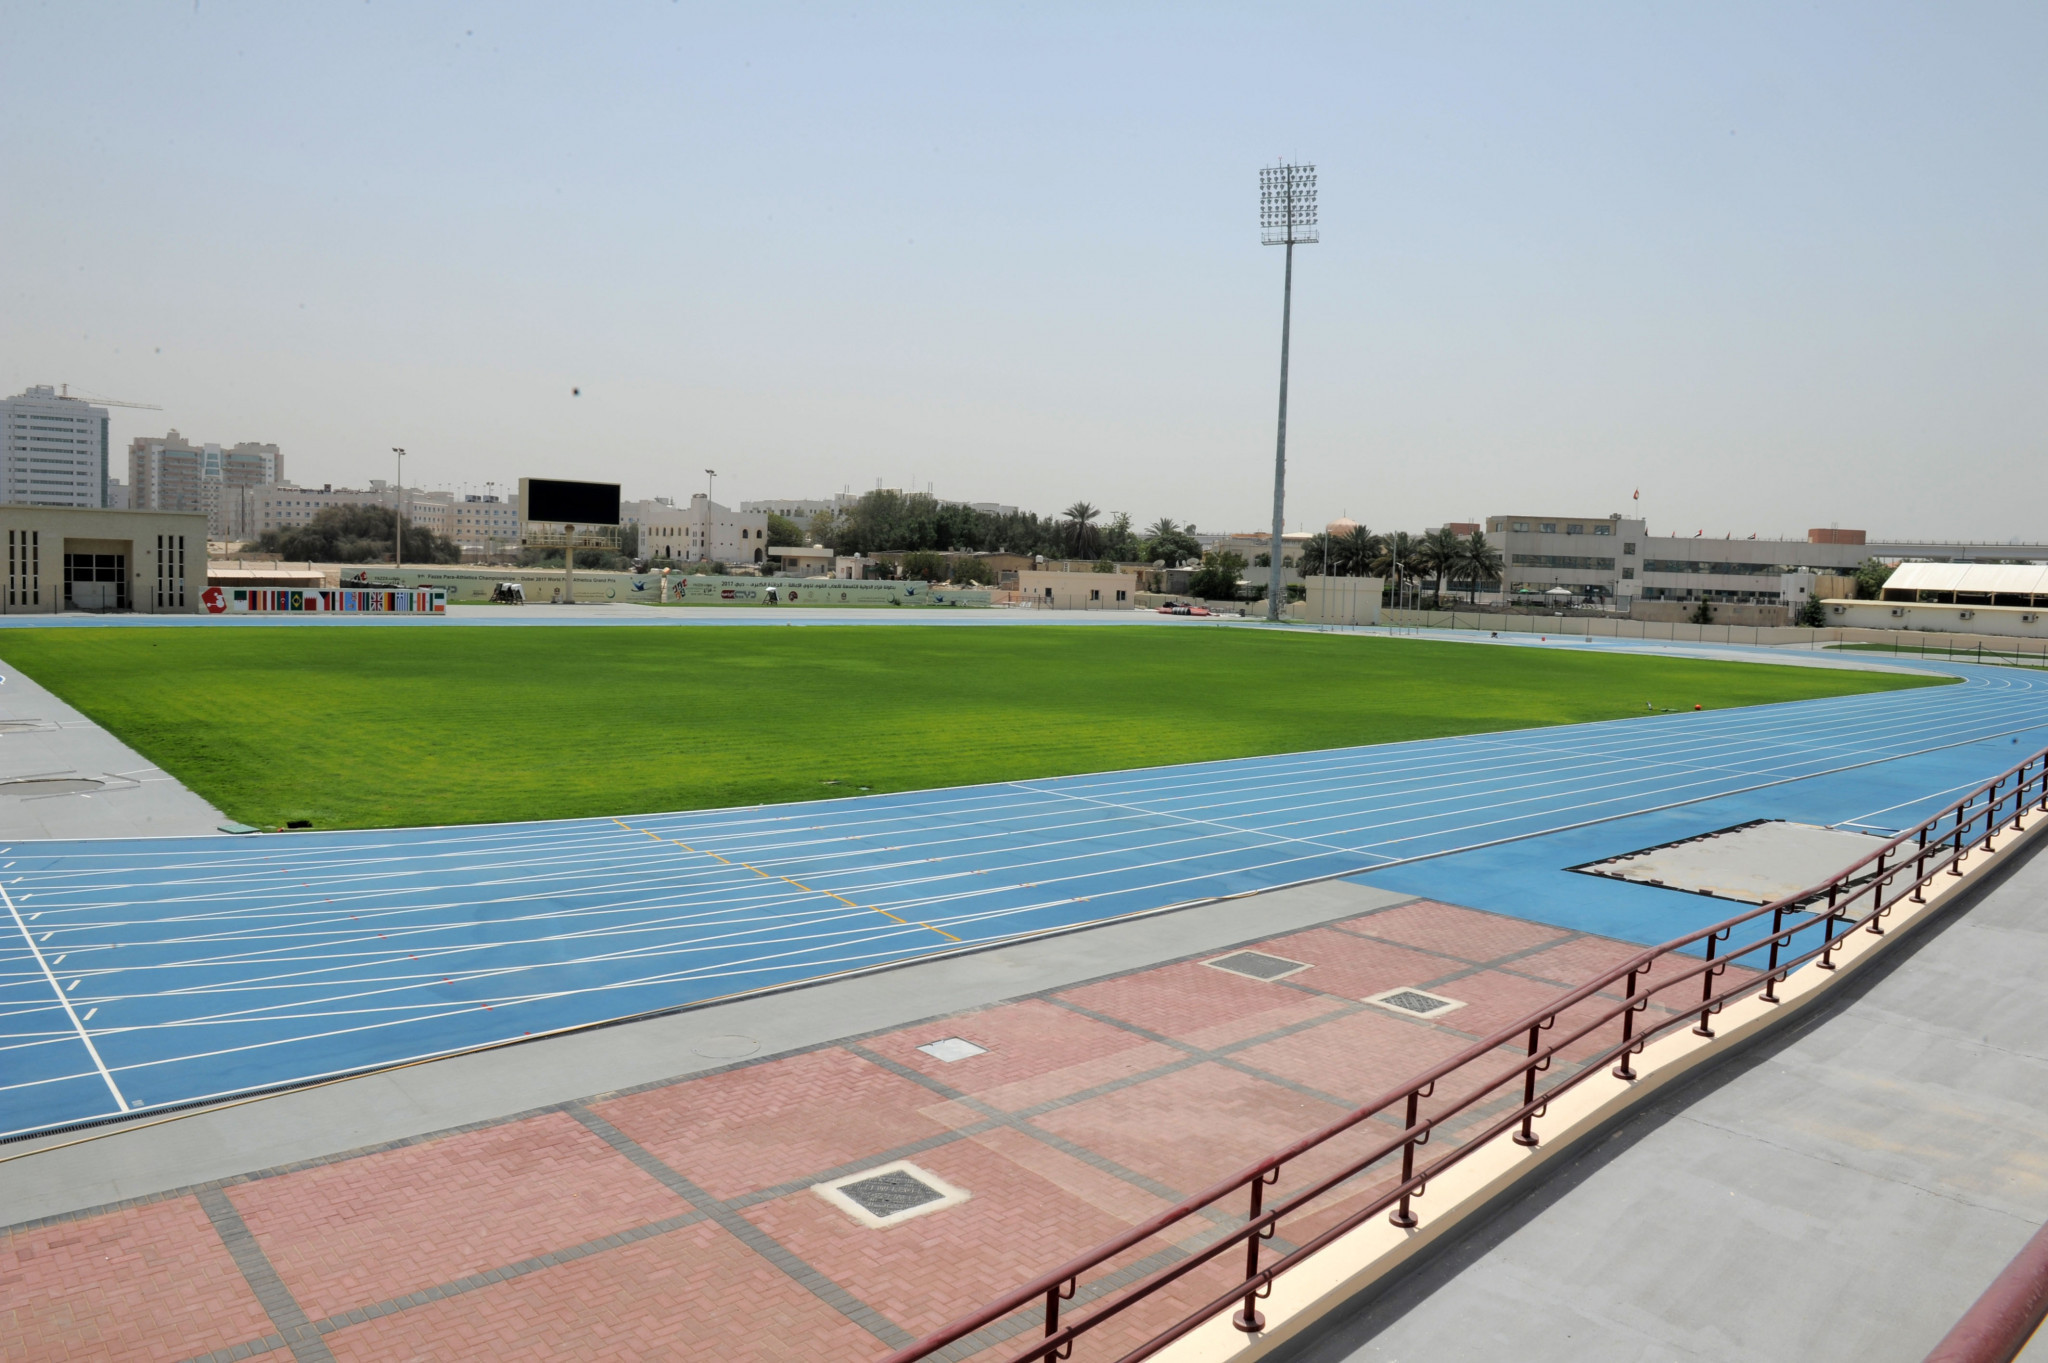 The 2019 World Para Athletics Championships will be held at the Dubai Club for People of Determination's new athletics stadium ©Dubai Club for People of Determination